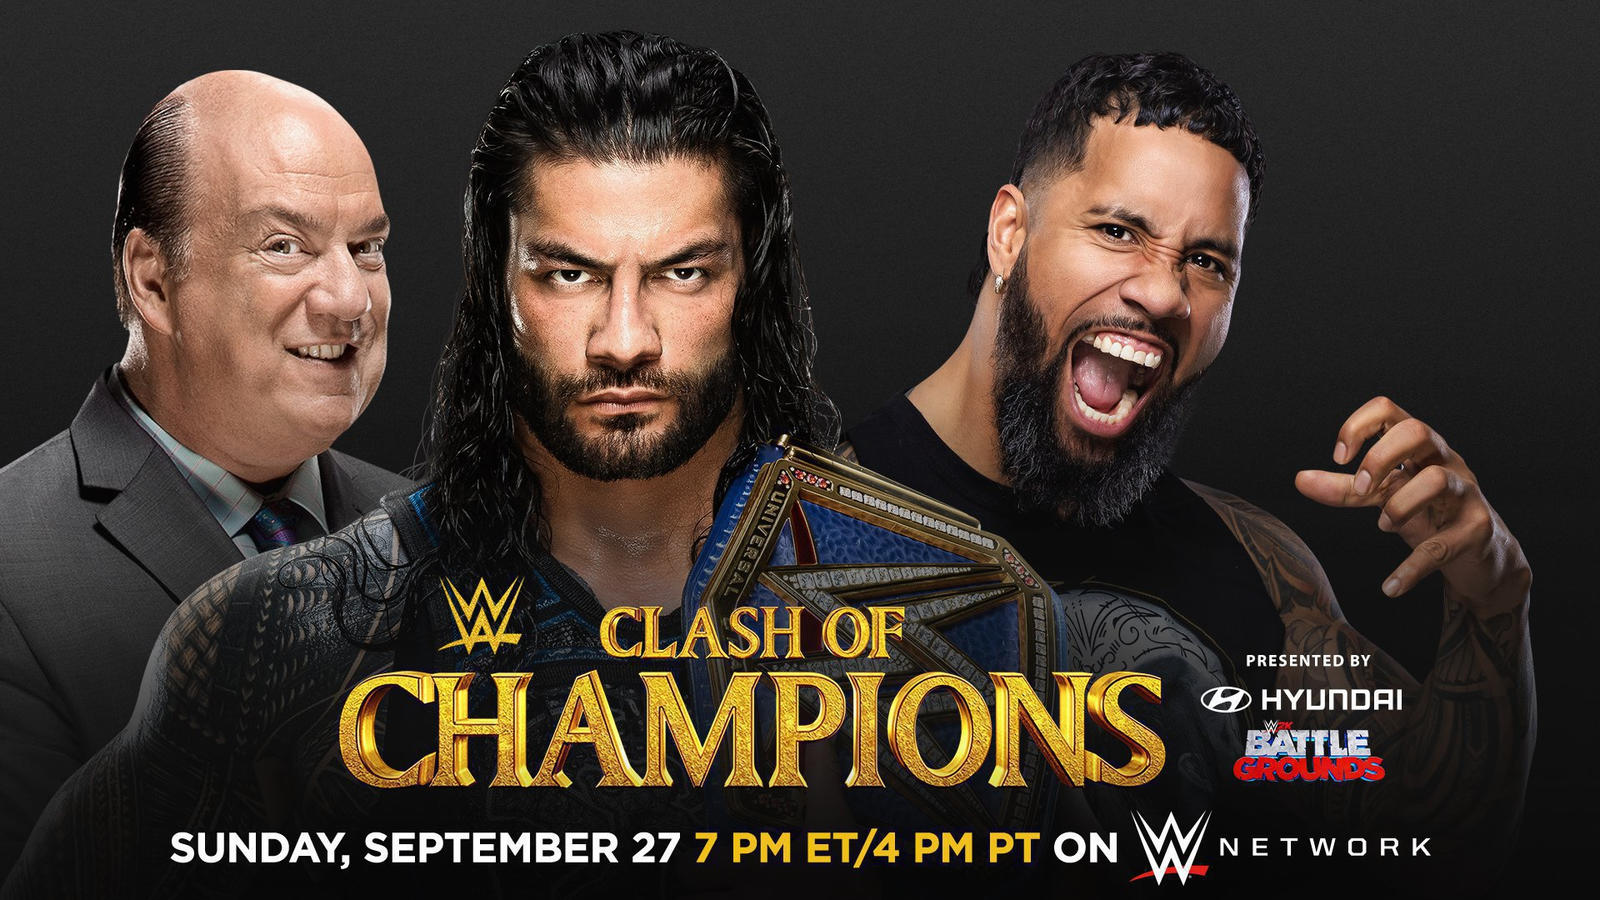 WWE Clash Of Champions 2020: Roman Reigns To Battle Cousin For Universal Title 1